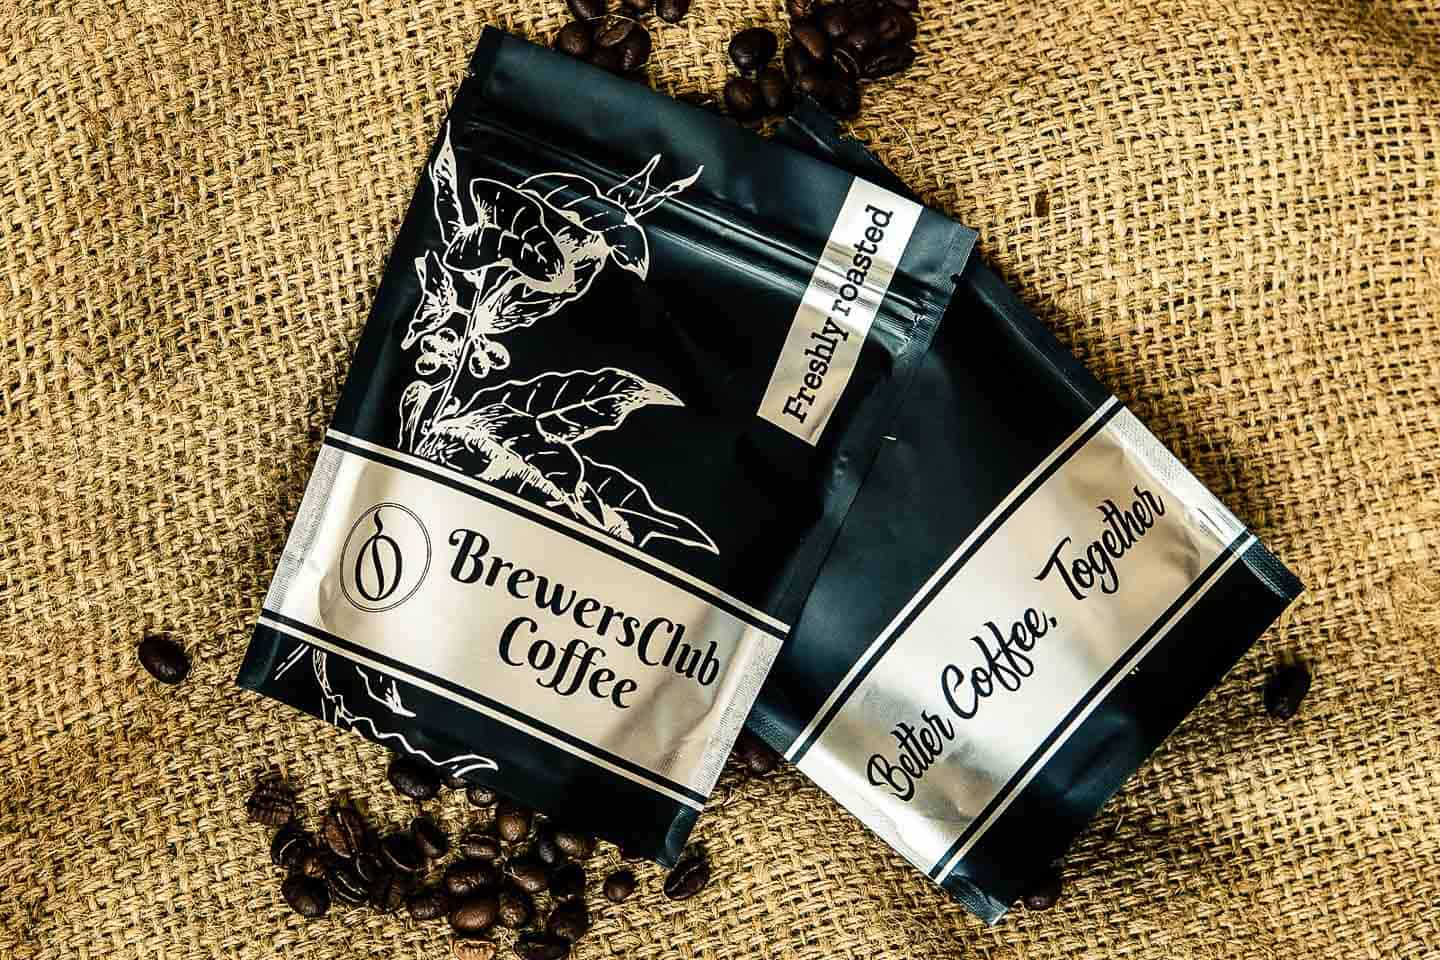 two bags of coffee beans from BrewersClub Coffee